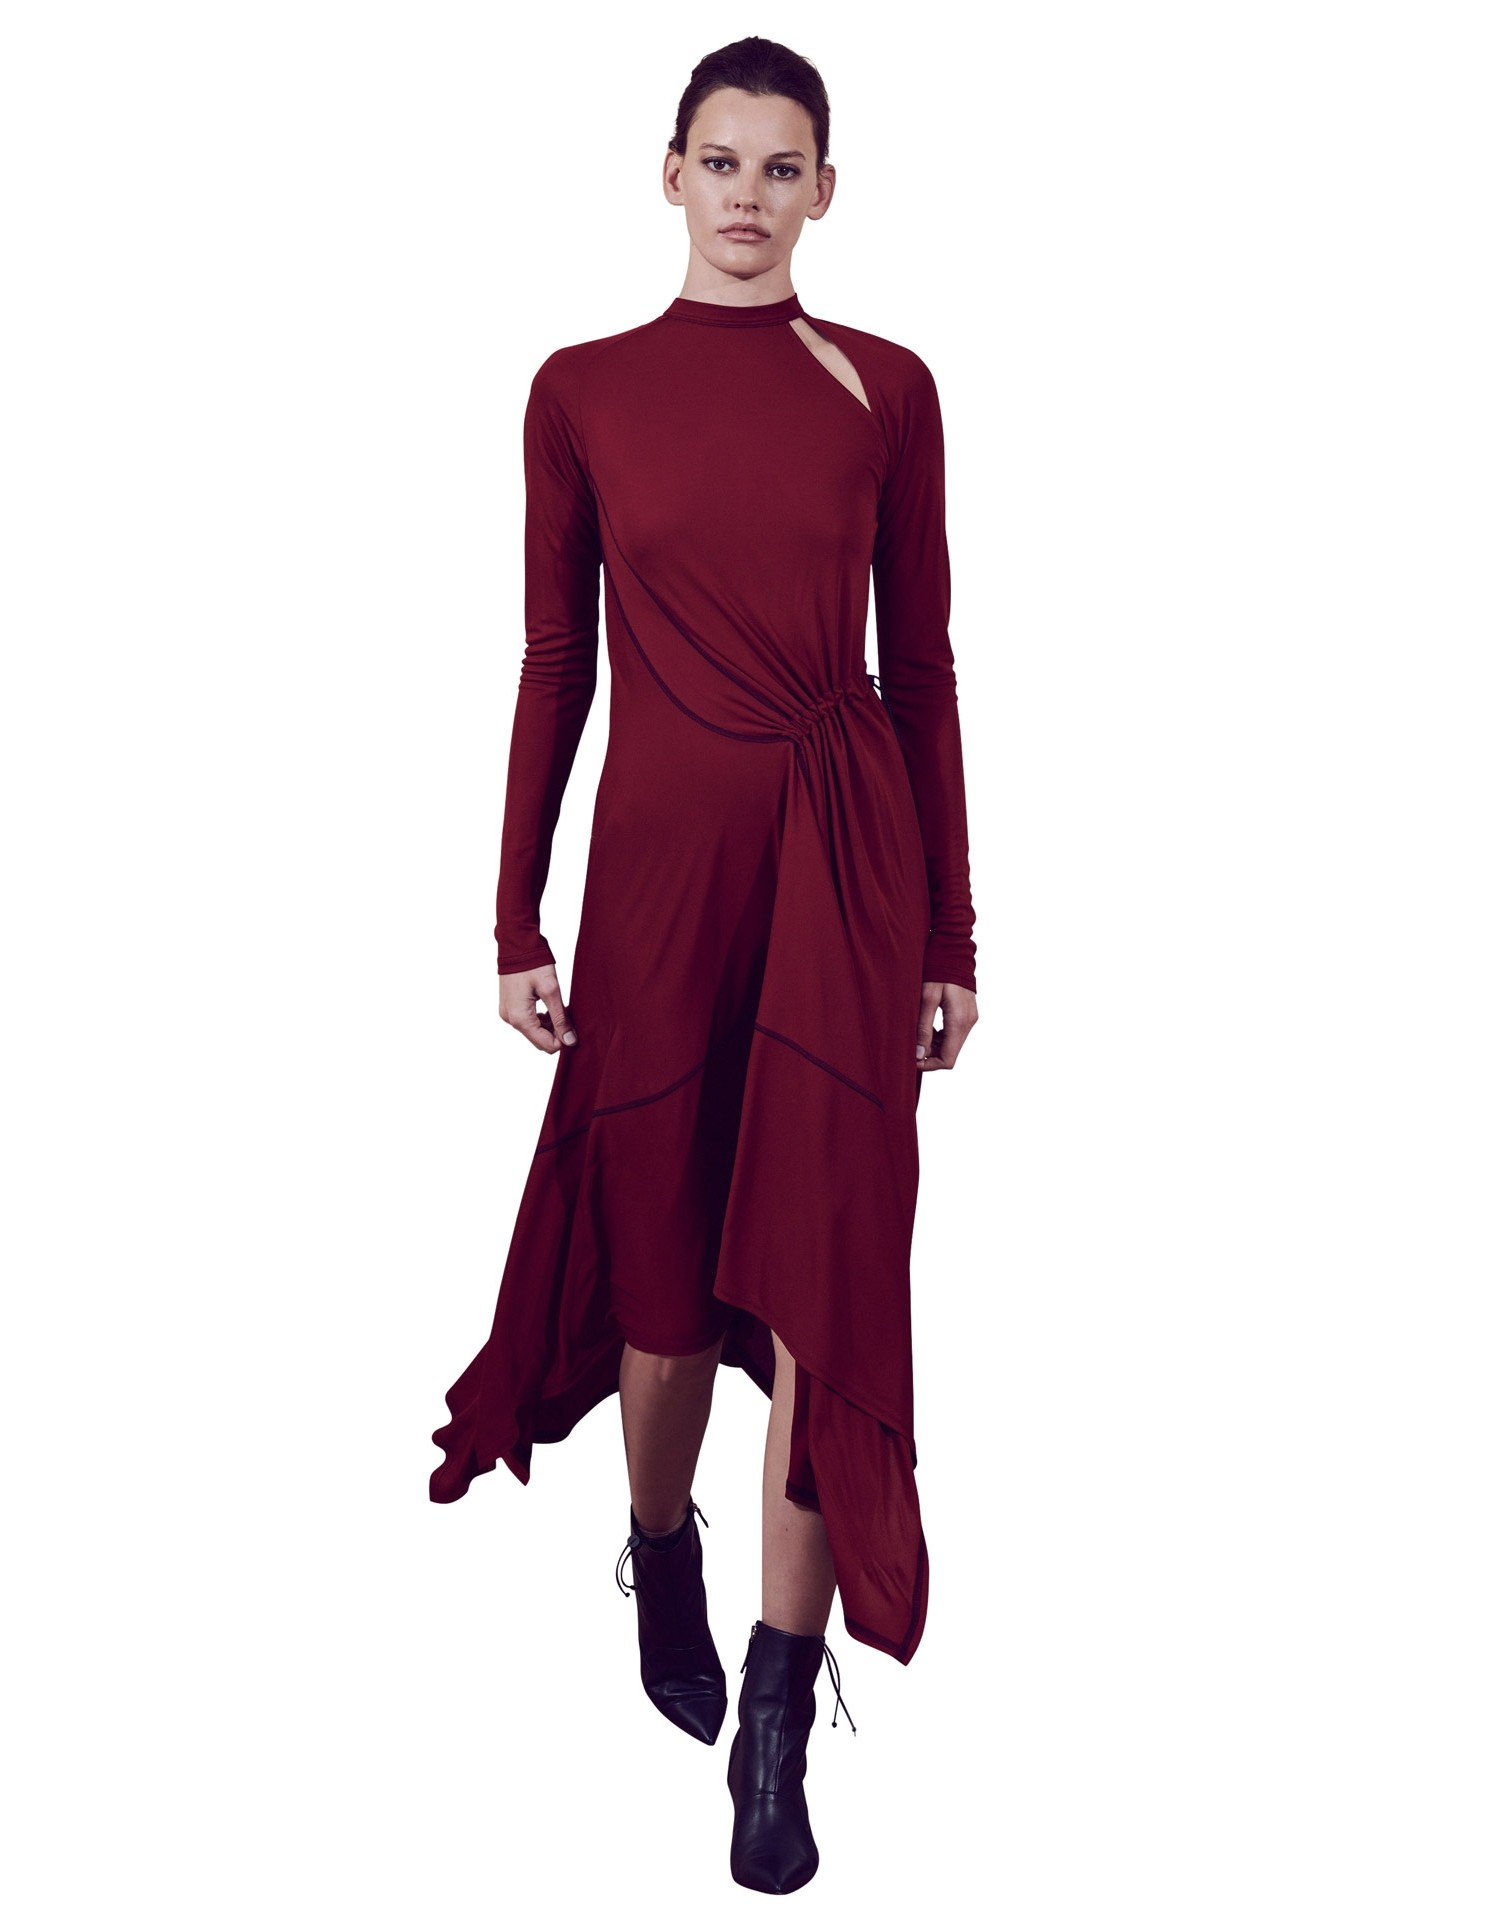 MONSE Deconstructed Cycling Dress on Model Front View